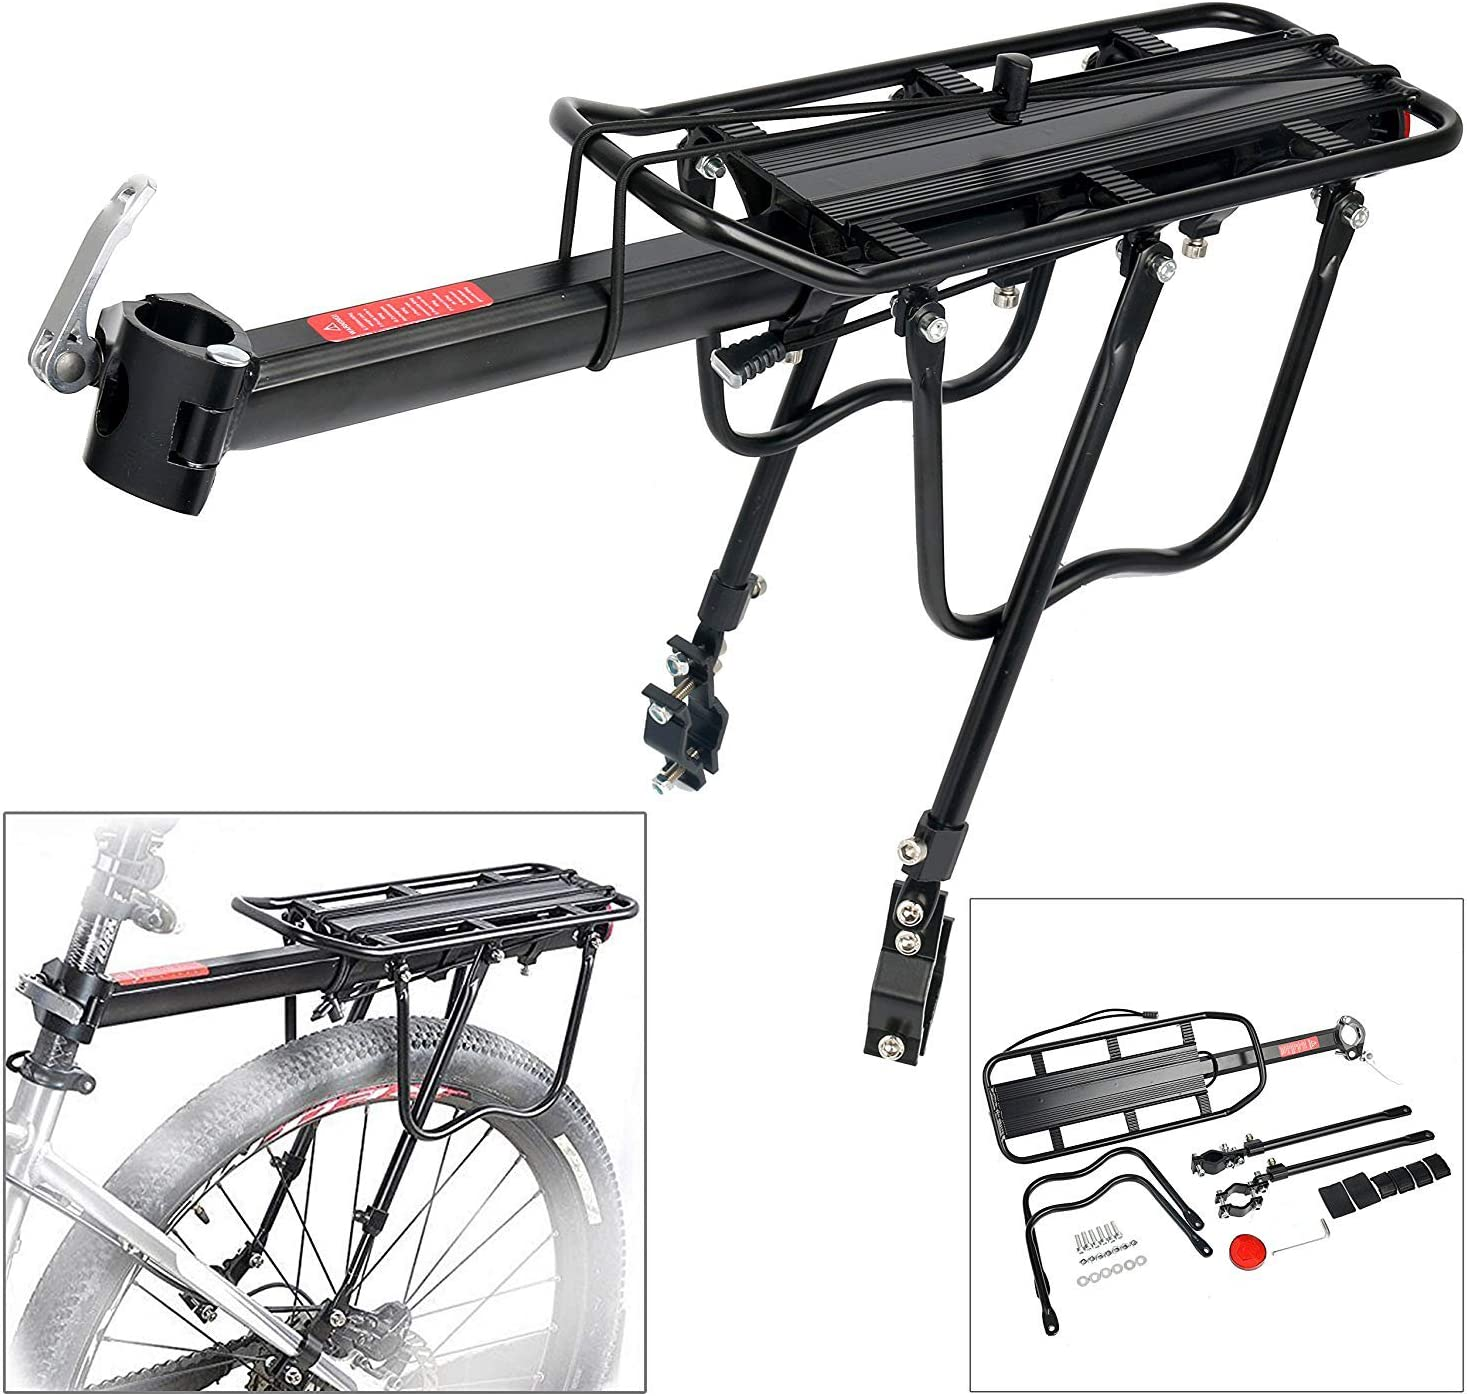 teraysun Bicycle Cargo Rack Aluminum and Gold Rear Bike Rack 110 lb Capacity Adjustable Height Almost Universal Quick Release Mountain Bike Cargo Rack